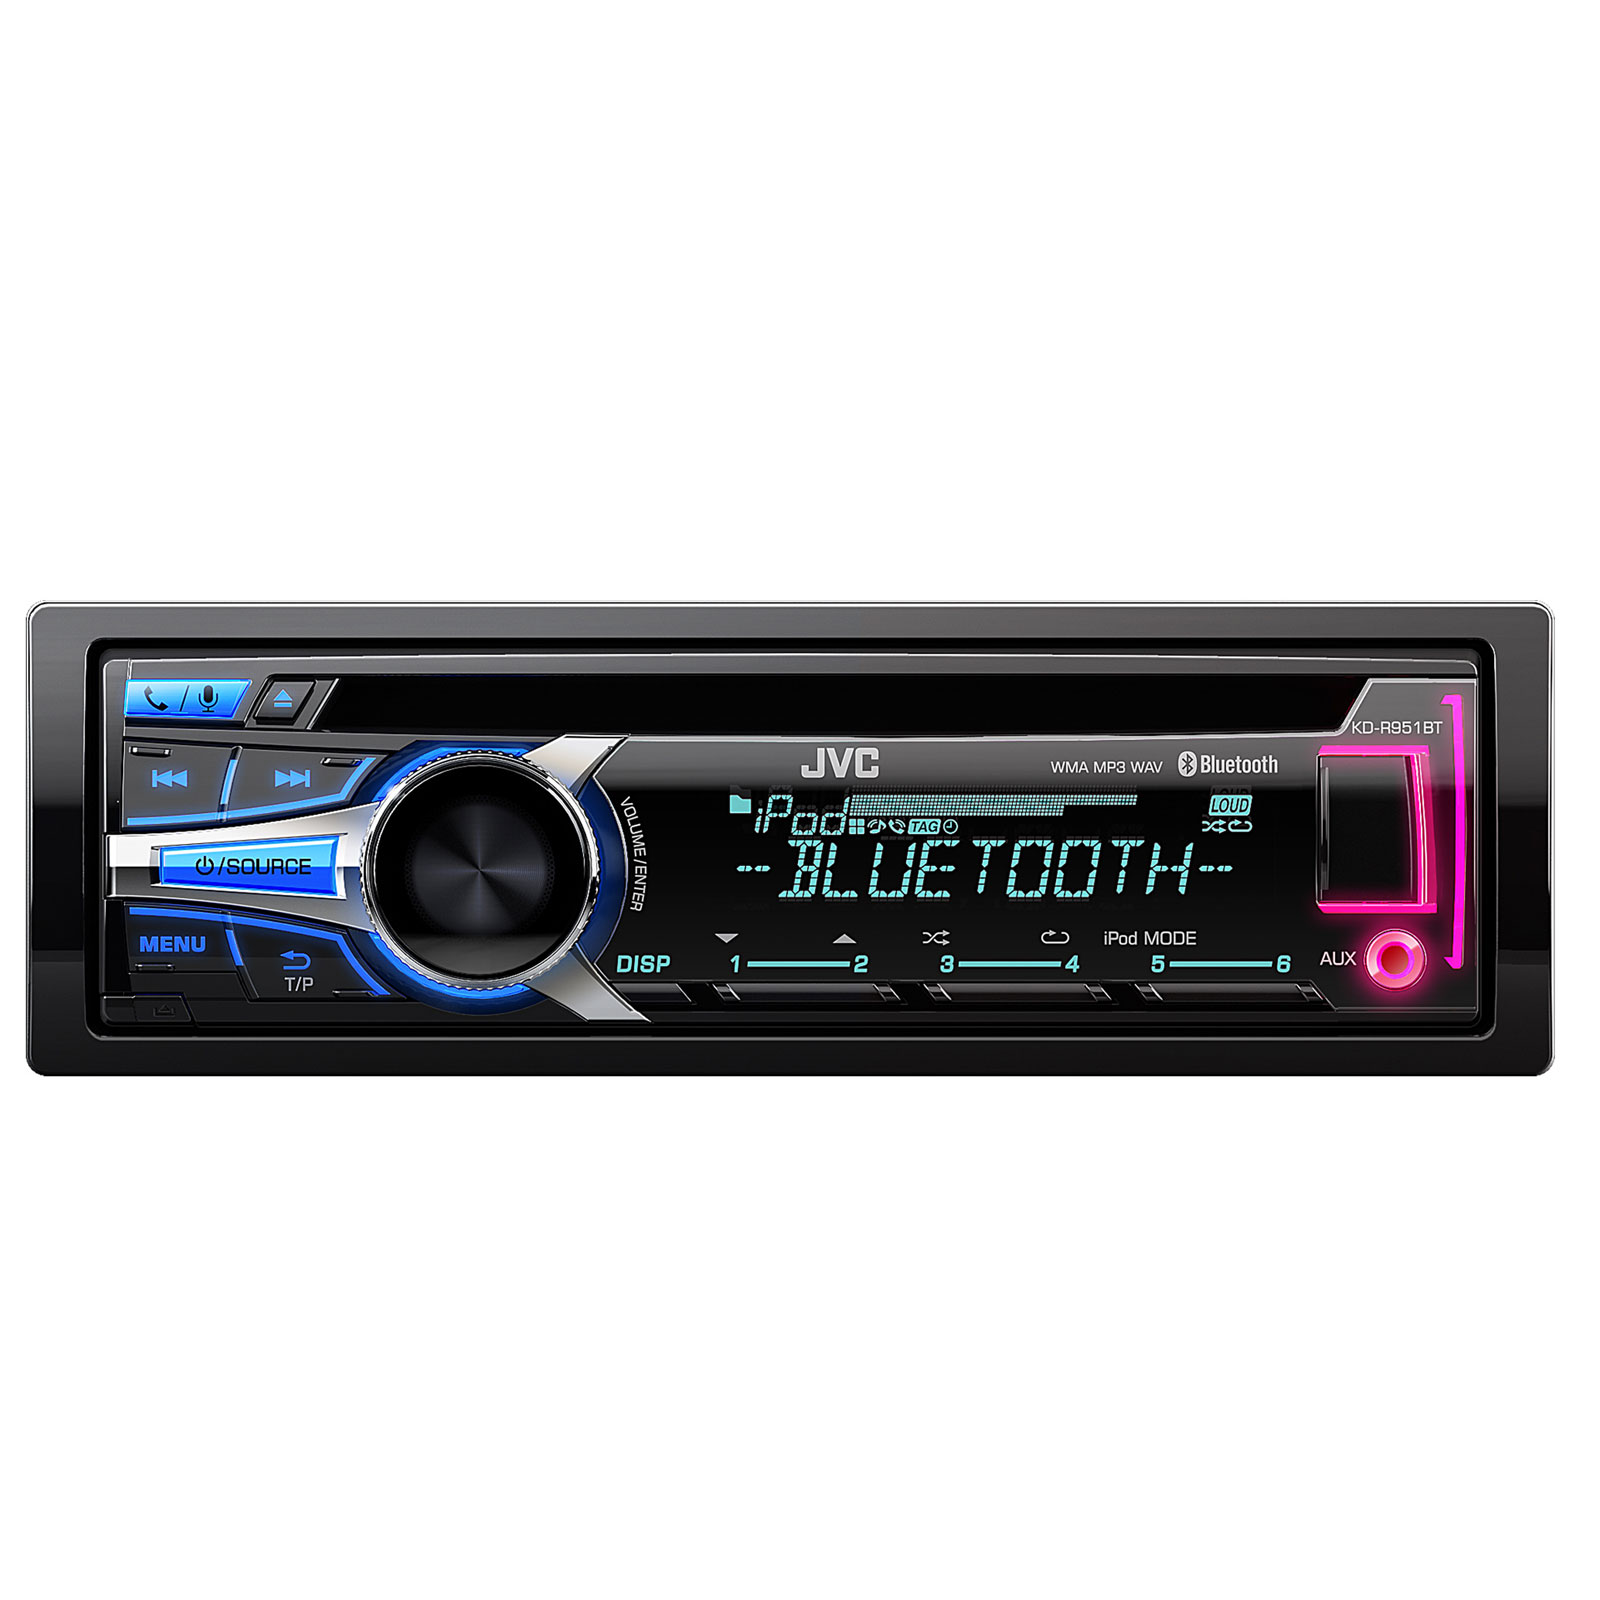 poste radio voiture avec bluetooth. Black Bedroom Furniture Sets. Home Design Ideas